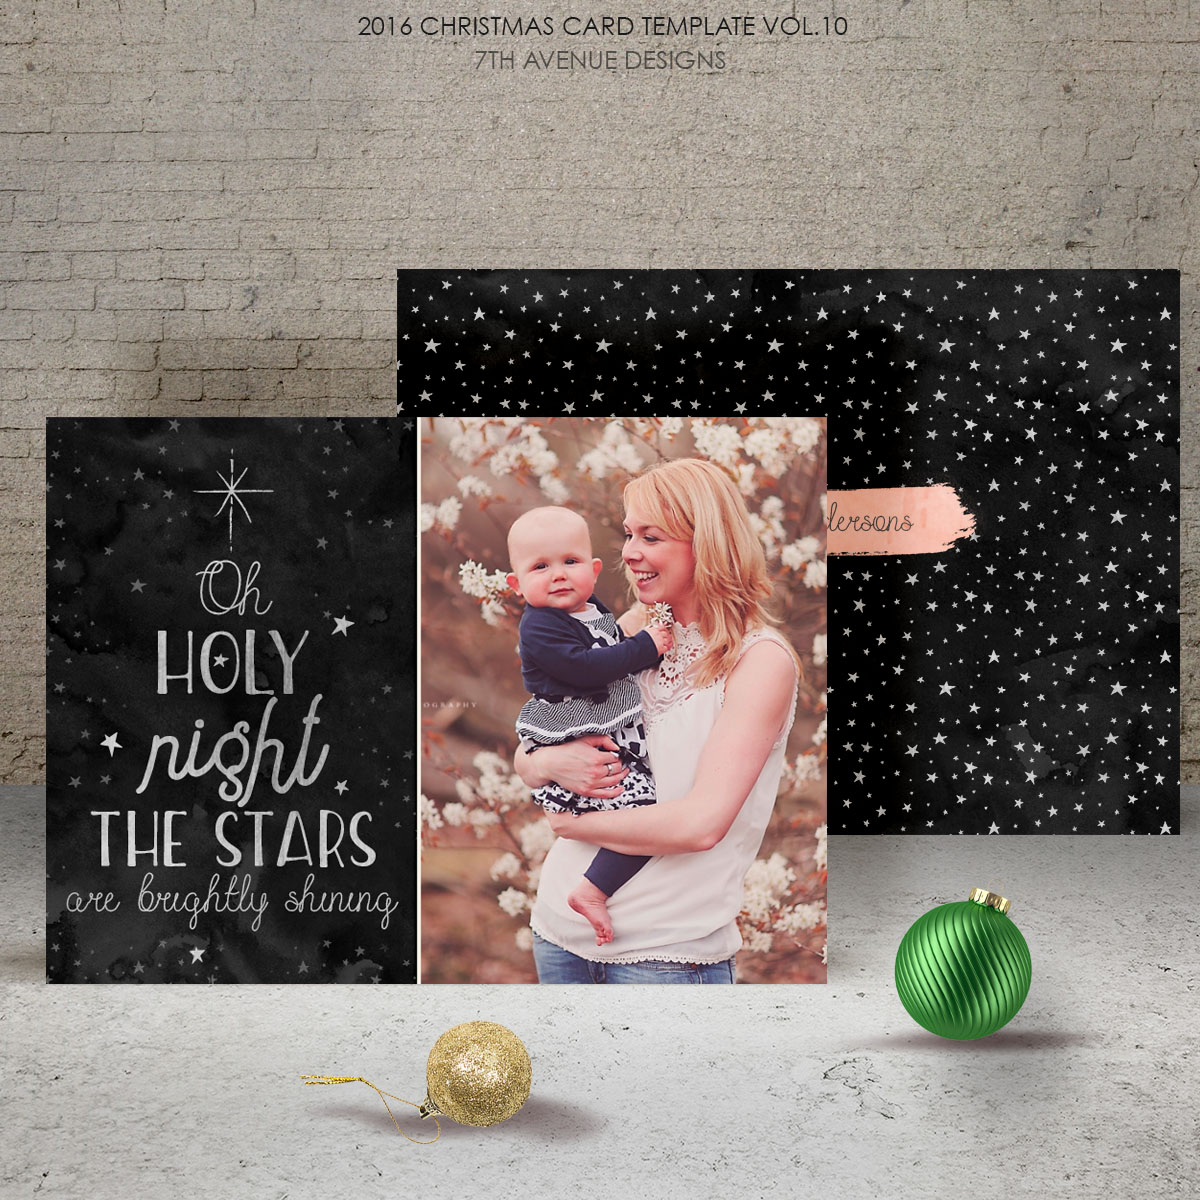 2016 Christmas Card Templates vol.10 -- 7x5 inch card template